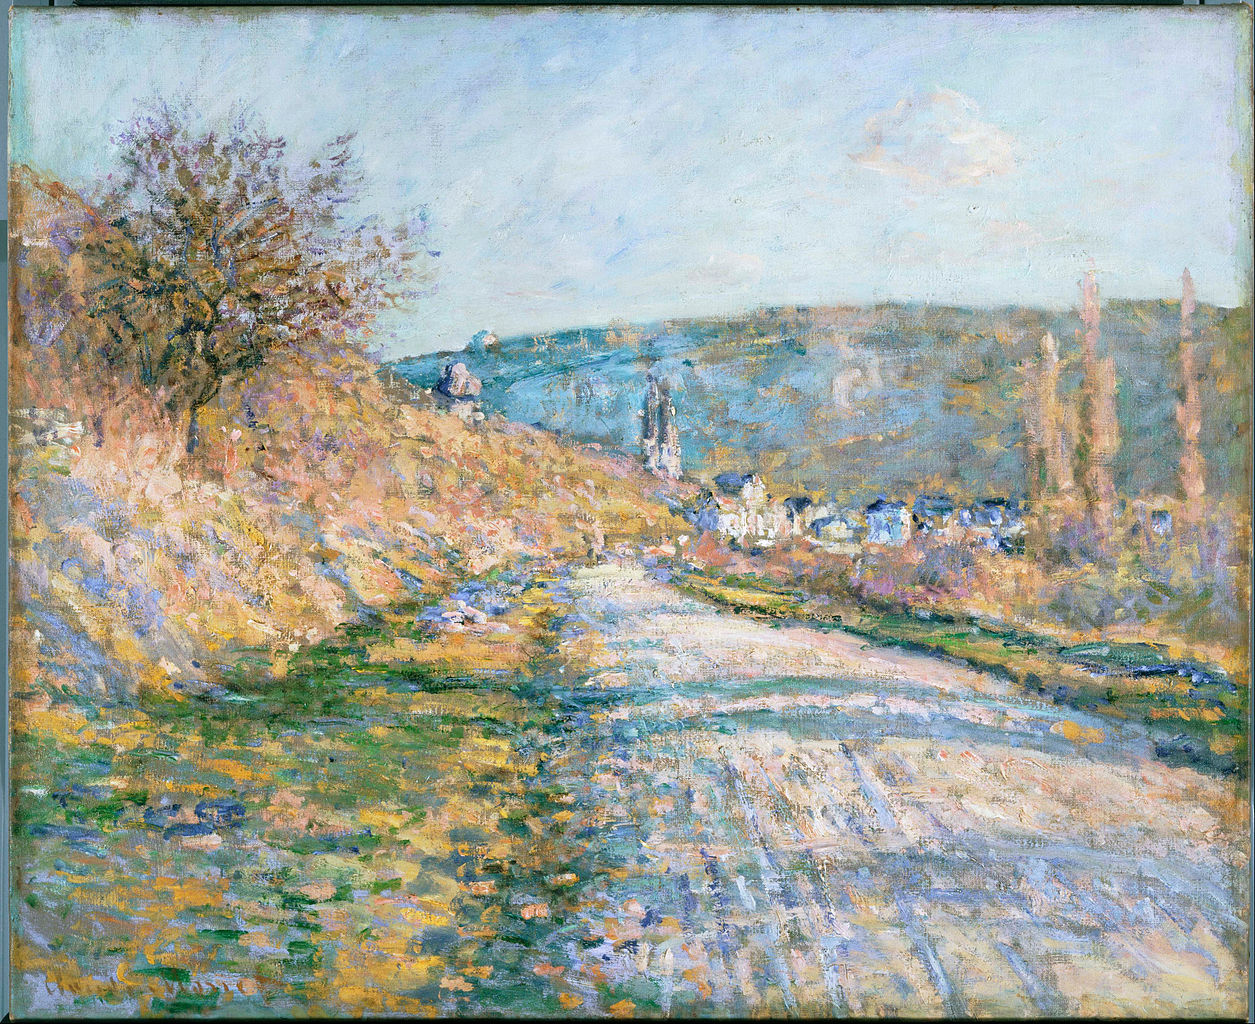 onet_-_The_Road_to_V%C3%A9theuil_-_Google_Art_Project.jpg/1255px-Claude_Monet_-_The_Road_to_V%C3%A9theuil_-_Google_Art_Project.jpg